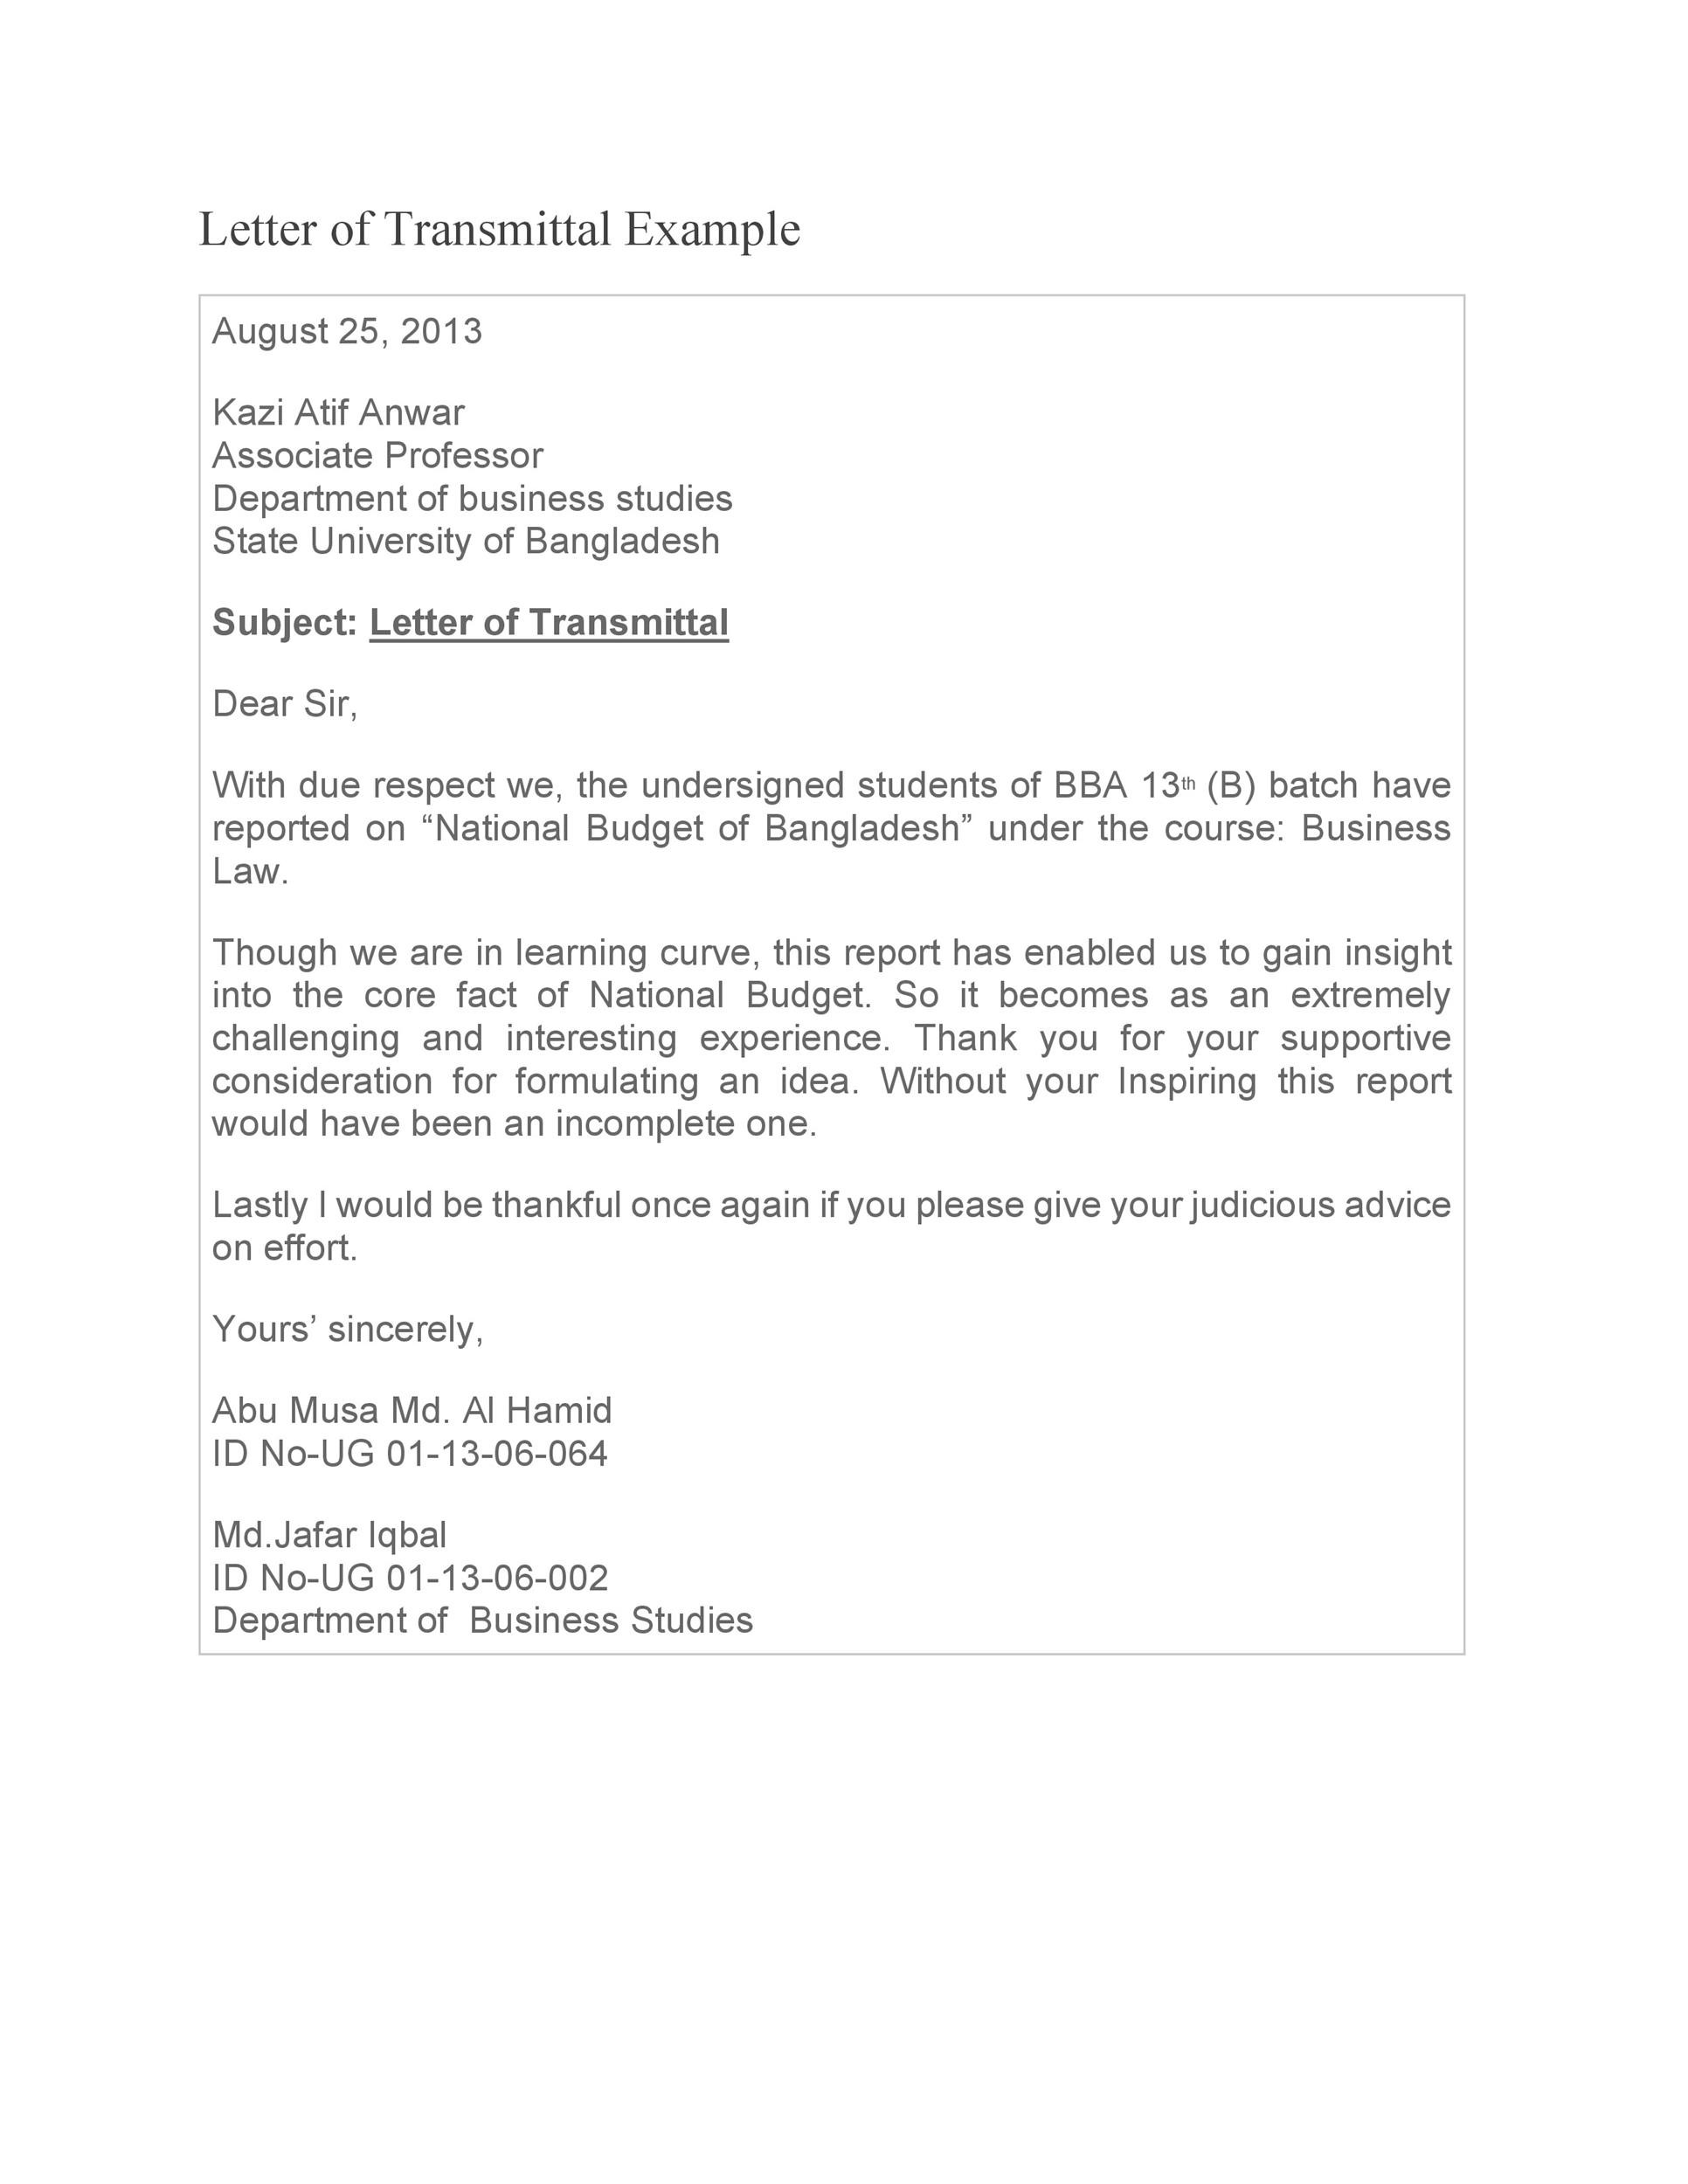 Letter of transmittal 40 great examples templates template lab letter of transmittal format altavistaventures